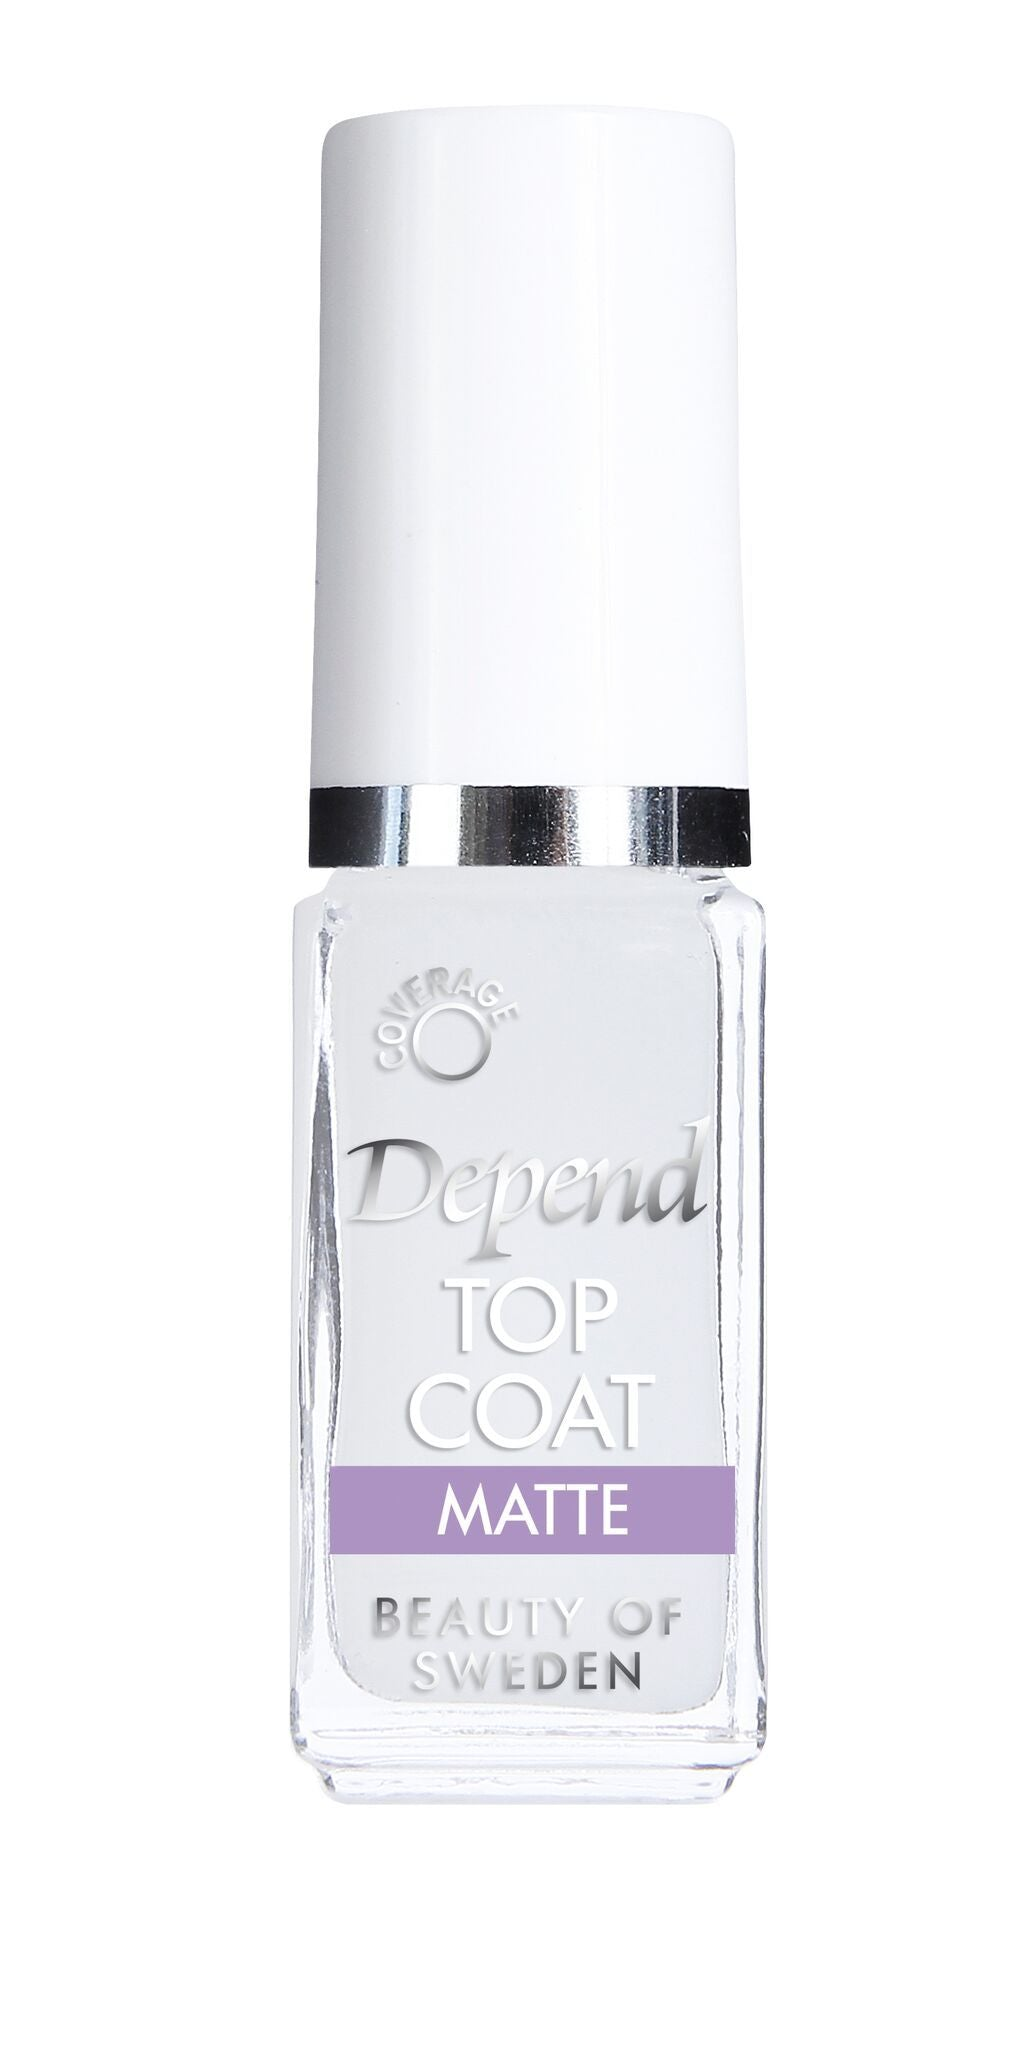 Minilakk Top Coat Matte